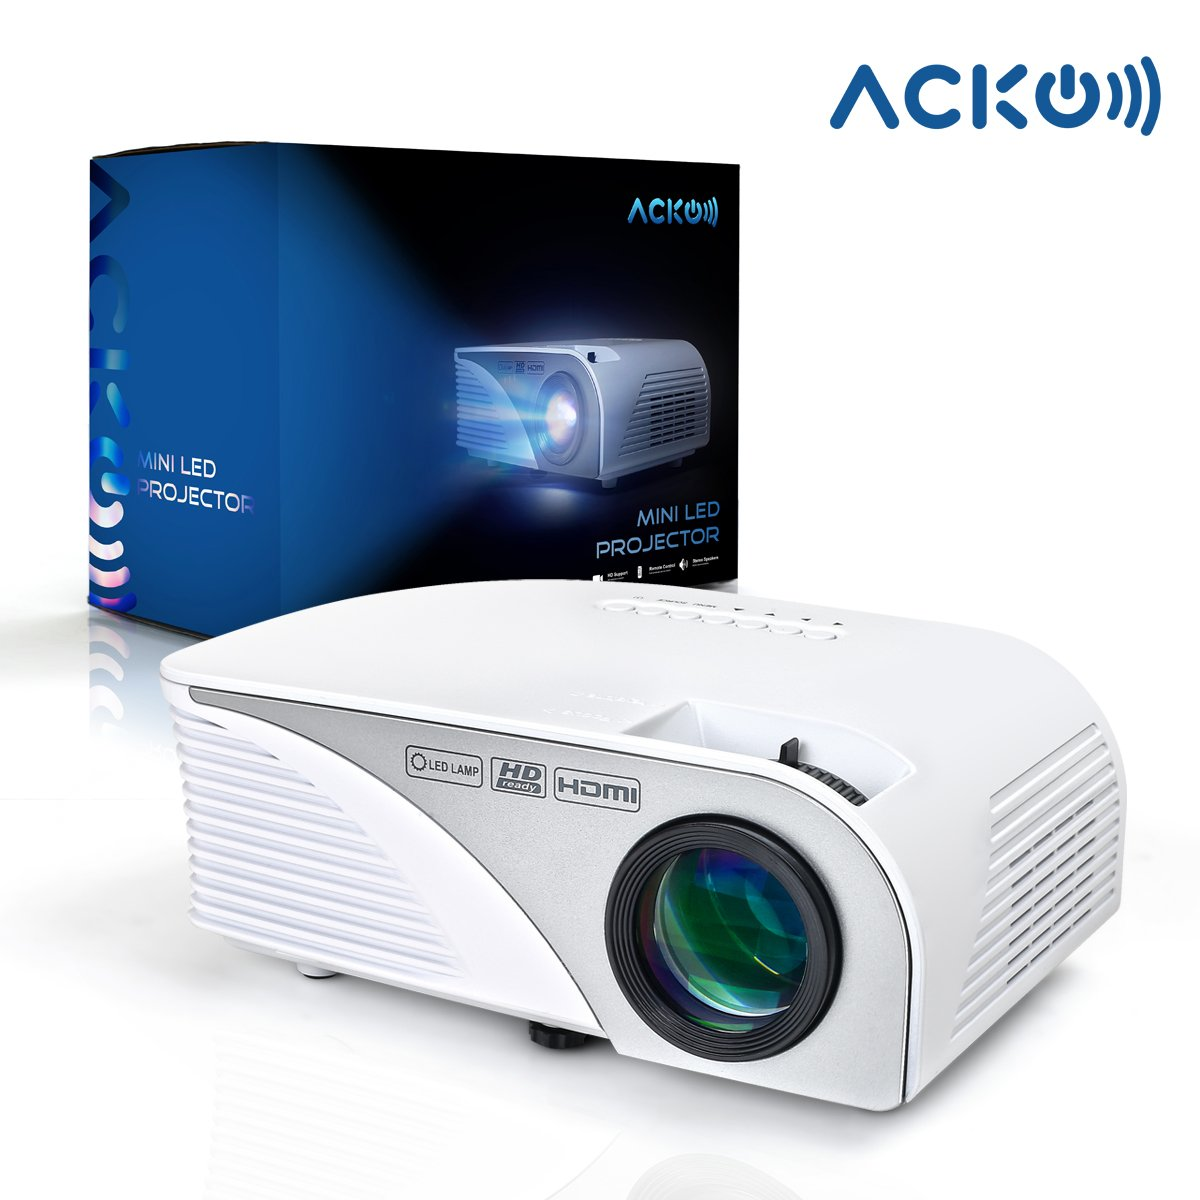 Acko portable mini hd led video projector review office for Hdmi mini projector reviews